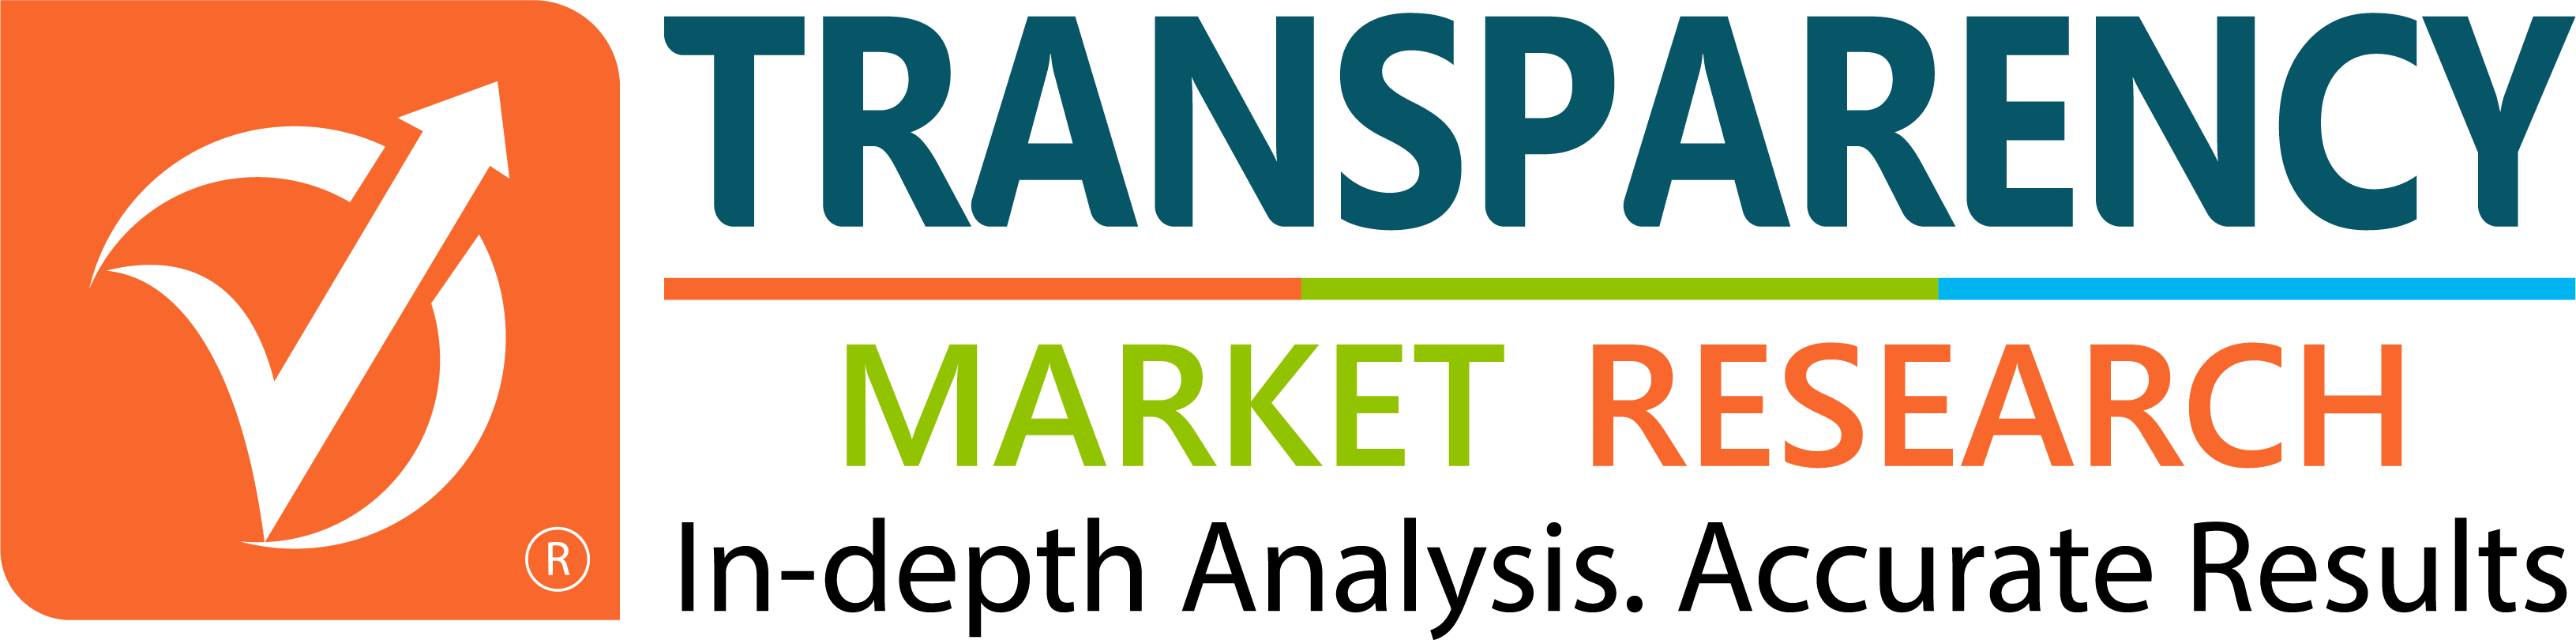 Negative-pressure Wound Therapy (NPWT) Devices Market To Reach US$ 6,754 Million By 2026 With CAGR of 9.6% | Transparency Market Research